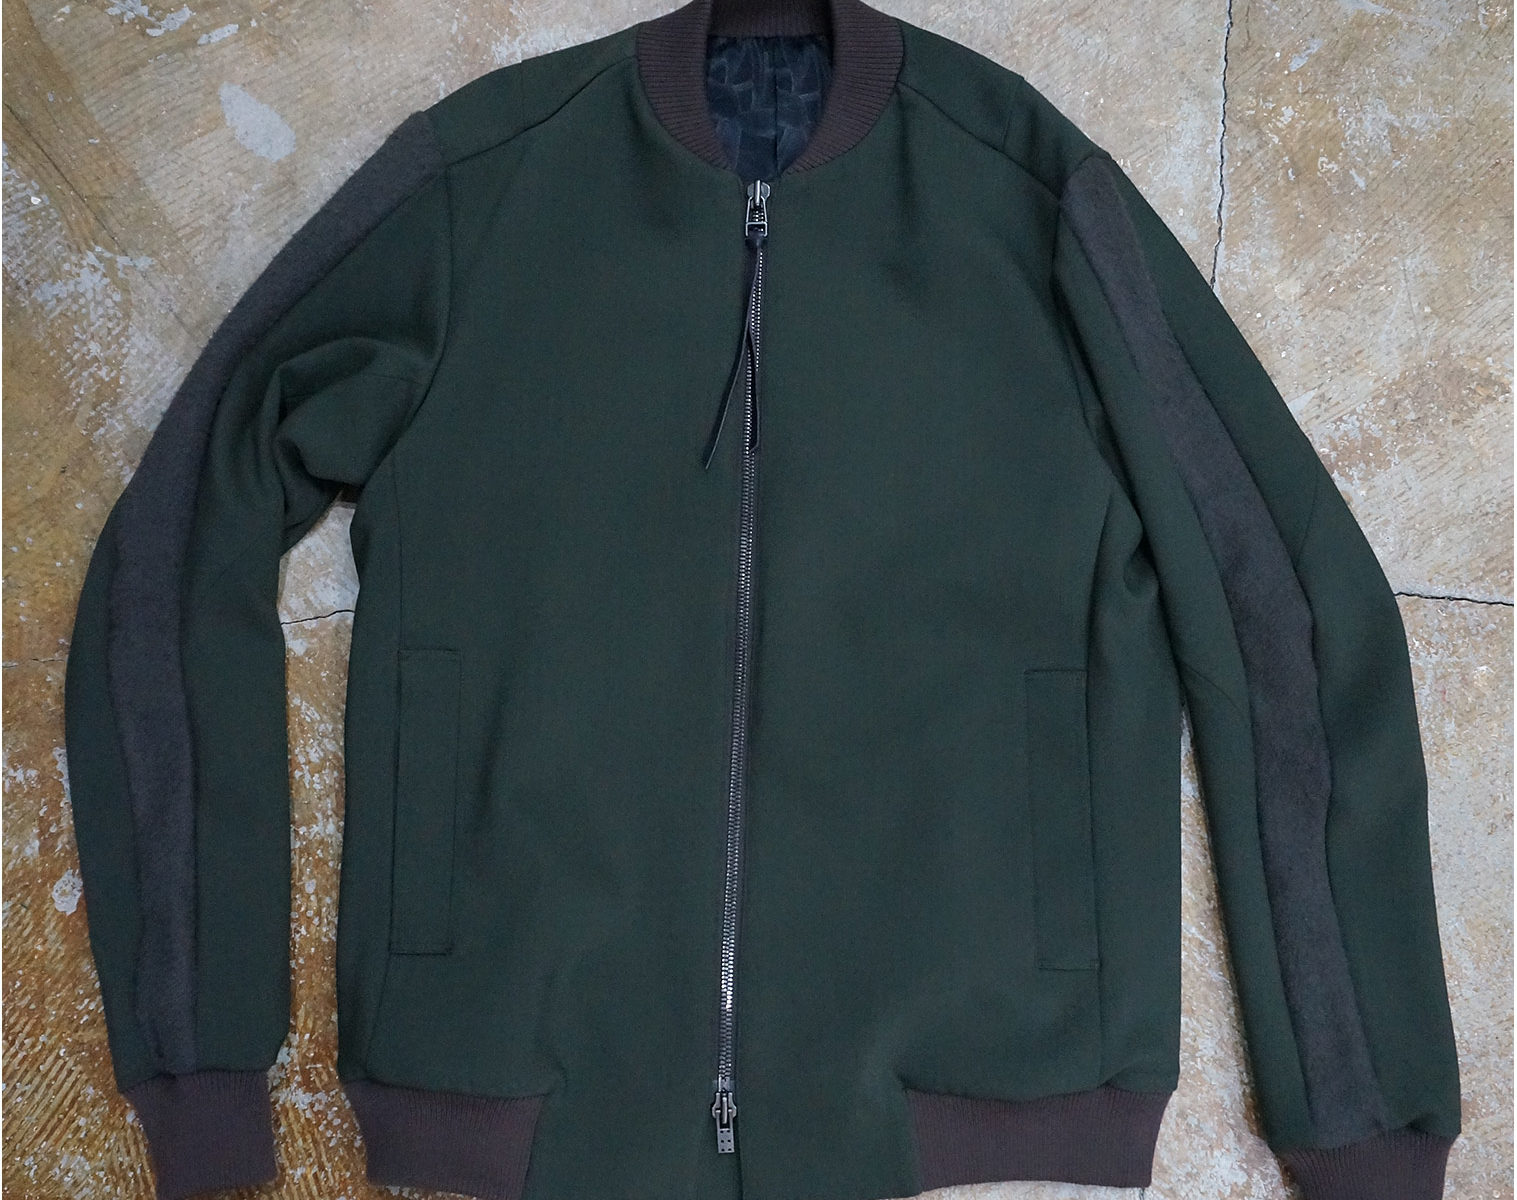 DEVOA 4way Stretch Light Wool Bomber Jacket 1